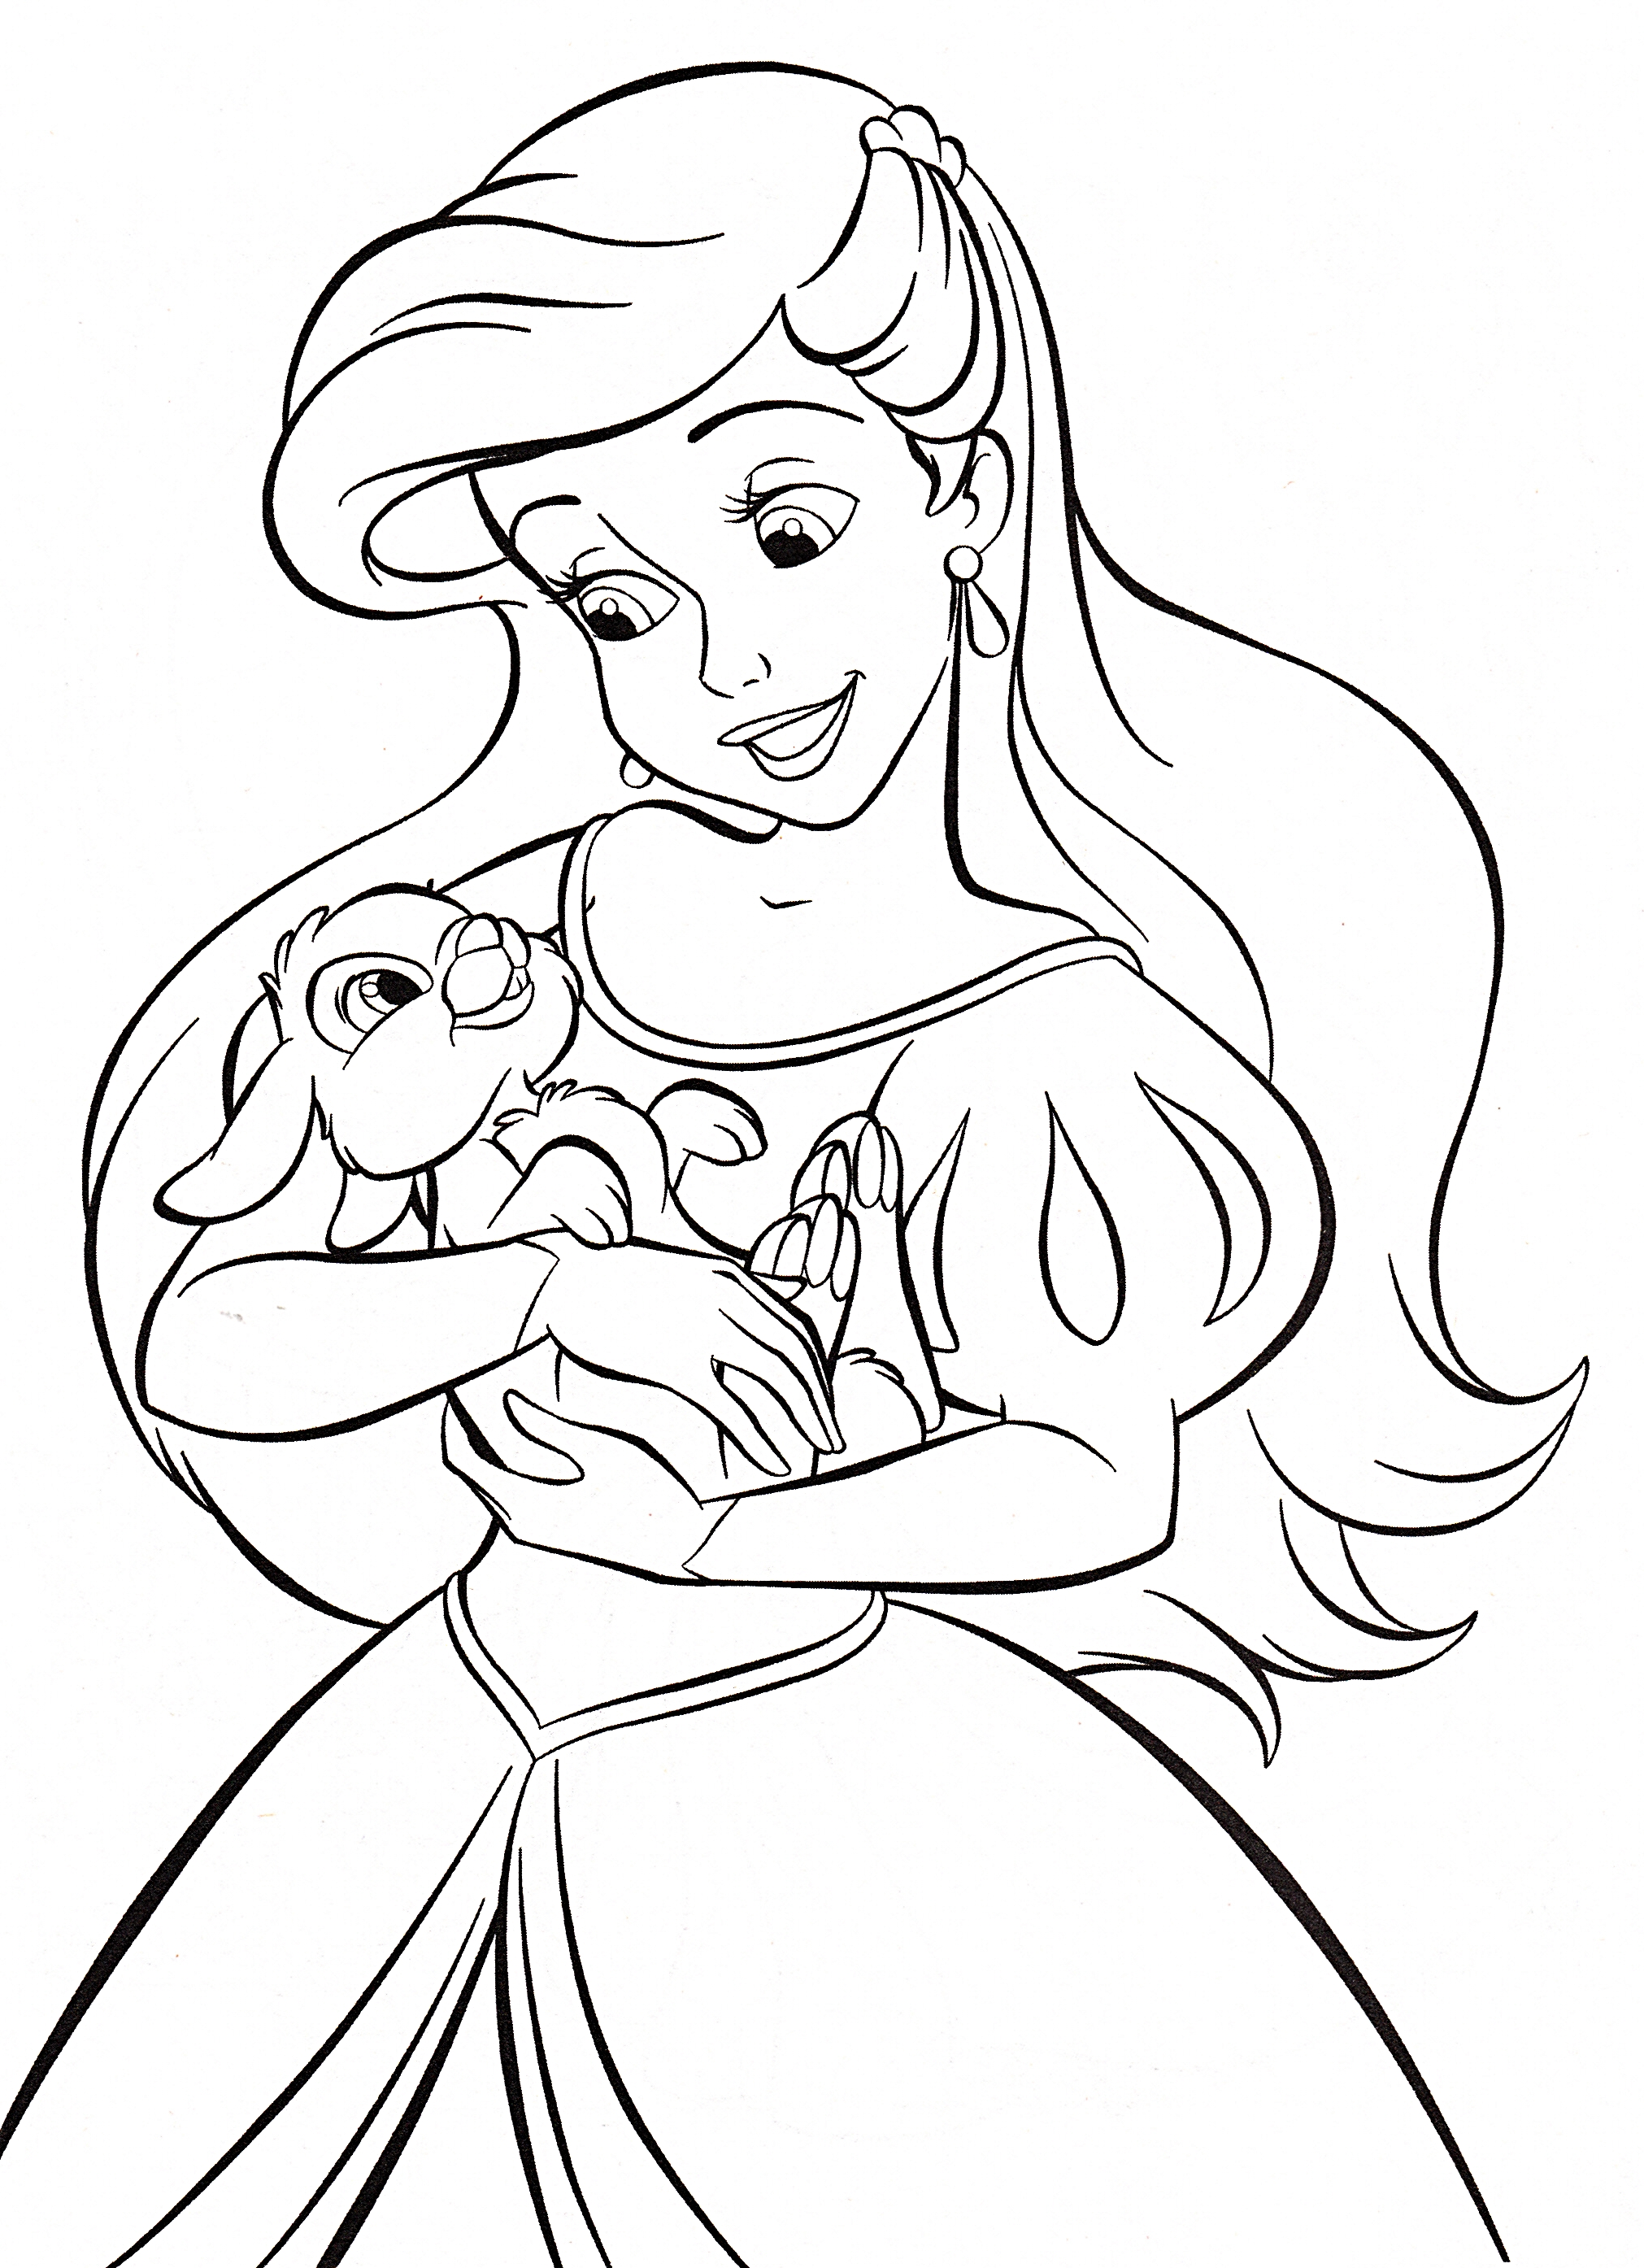 disney princess characters coloring pages - photo#4